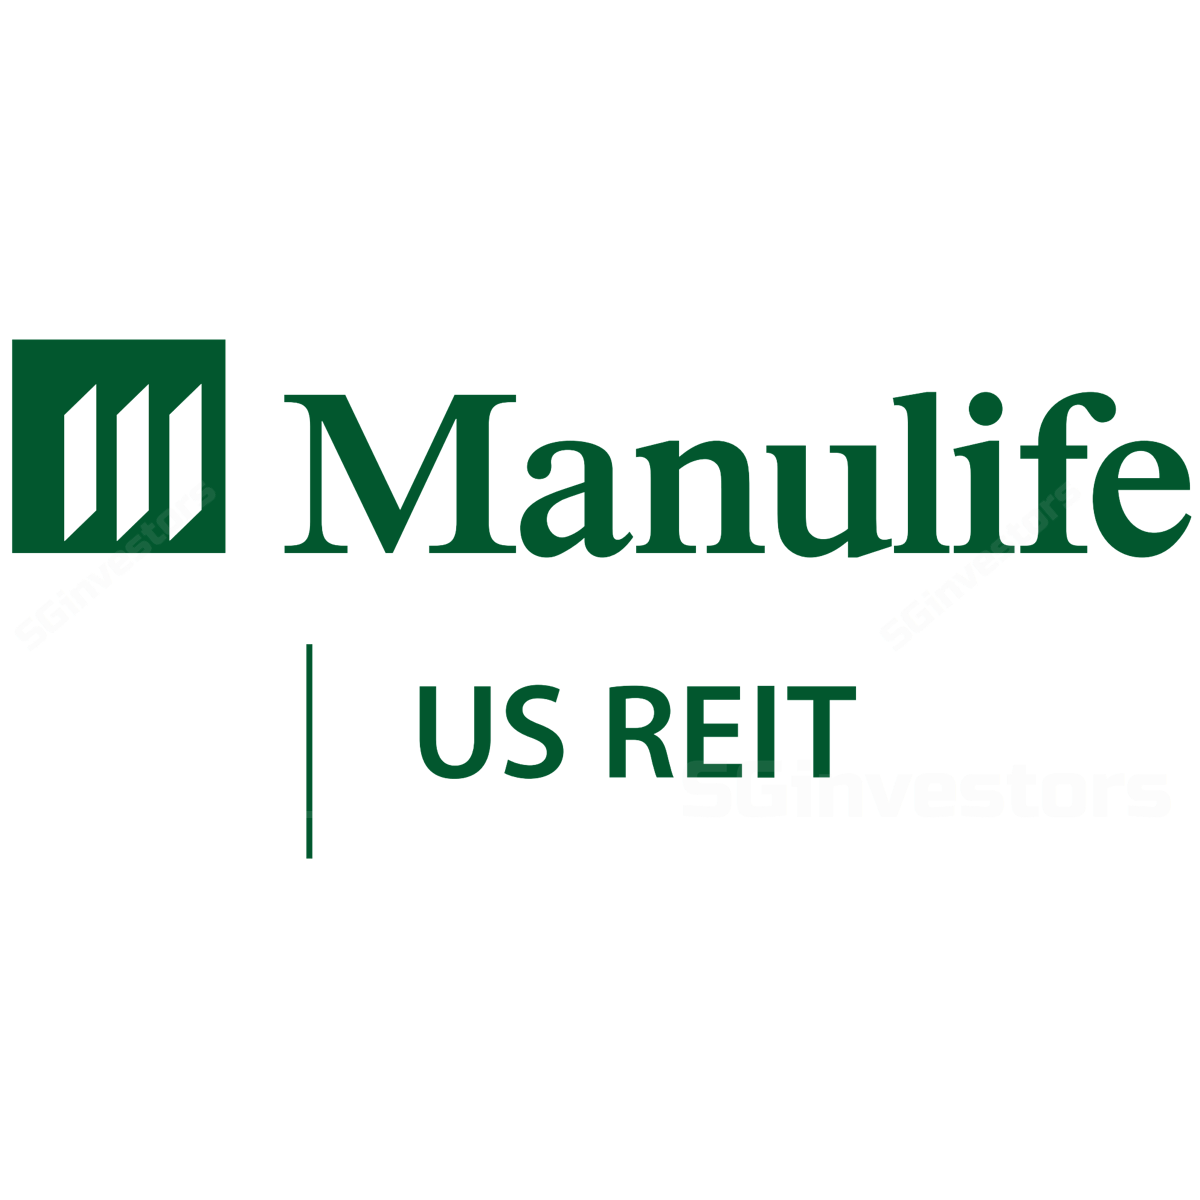 Manulife US Real Estate Inv - DBS Vickers 2017-01-04: America's office is great